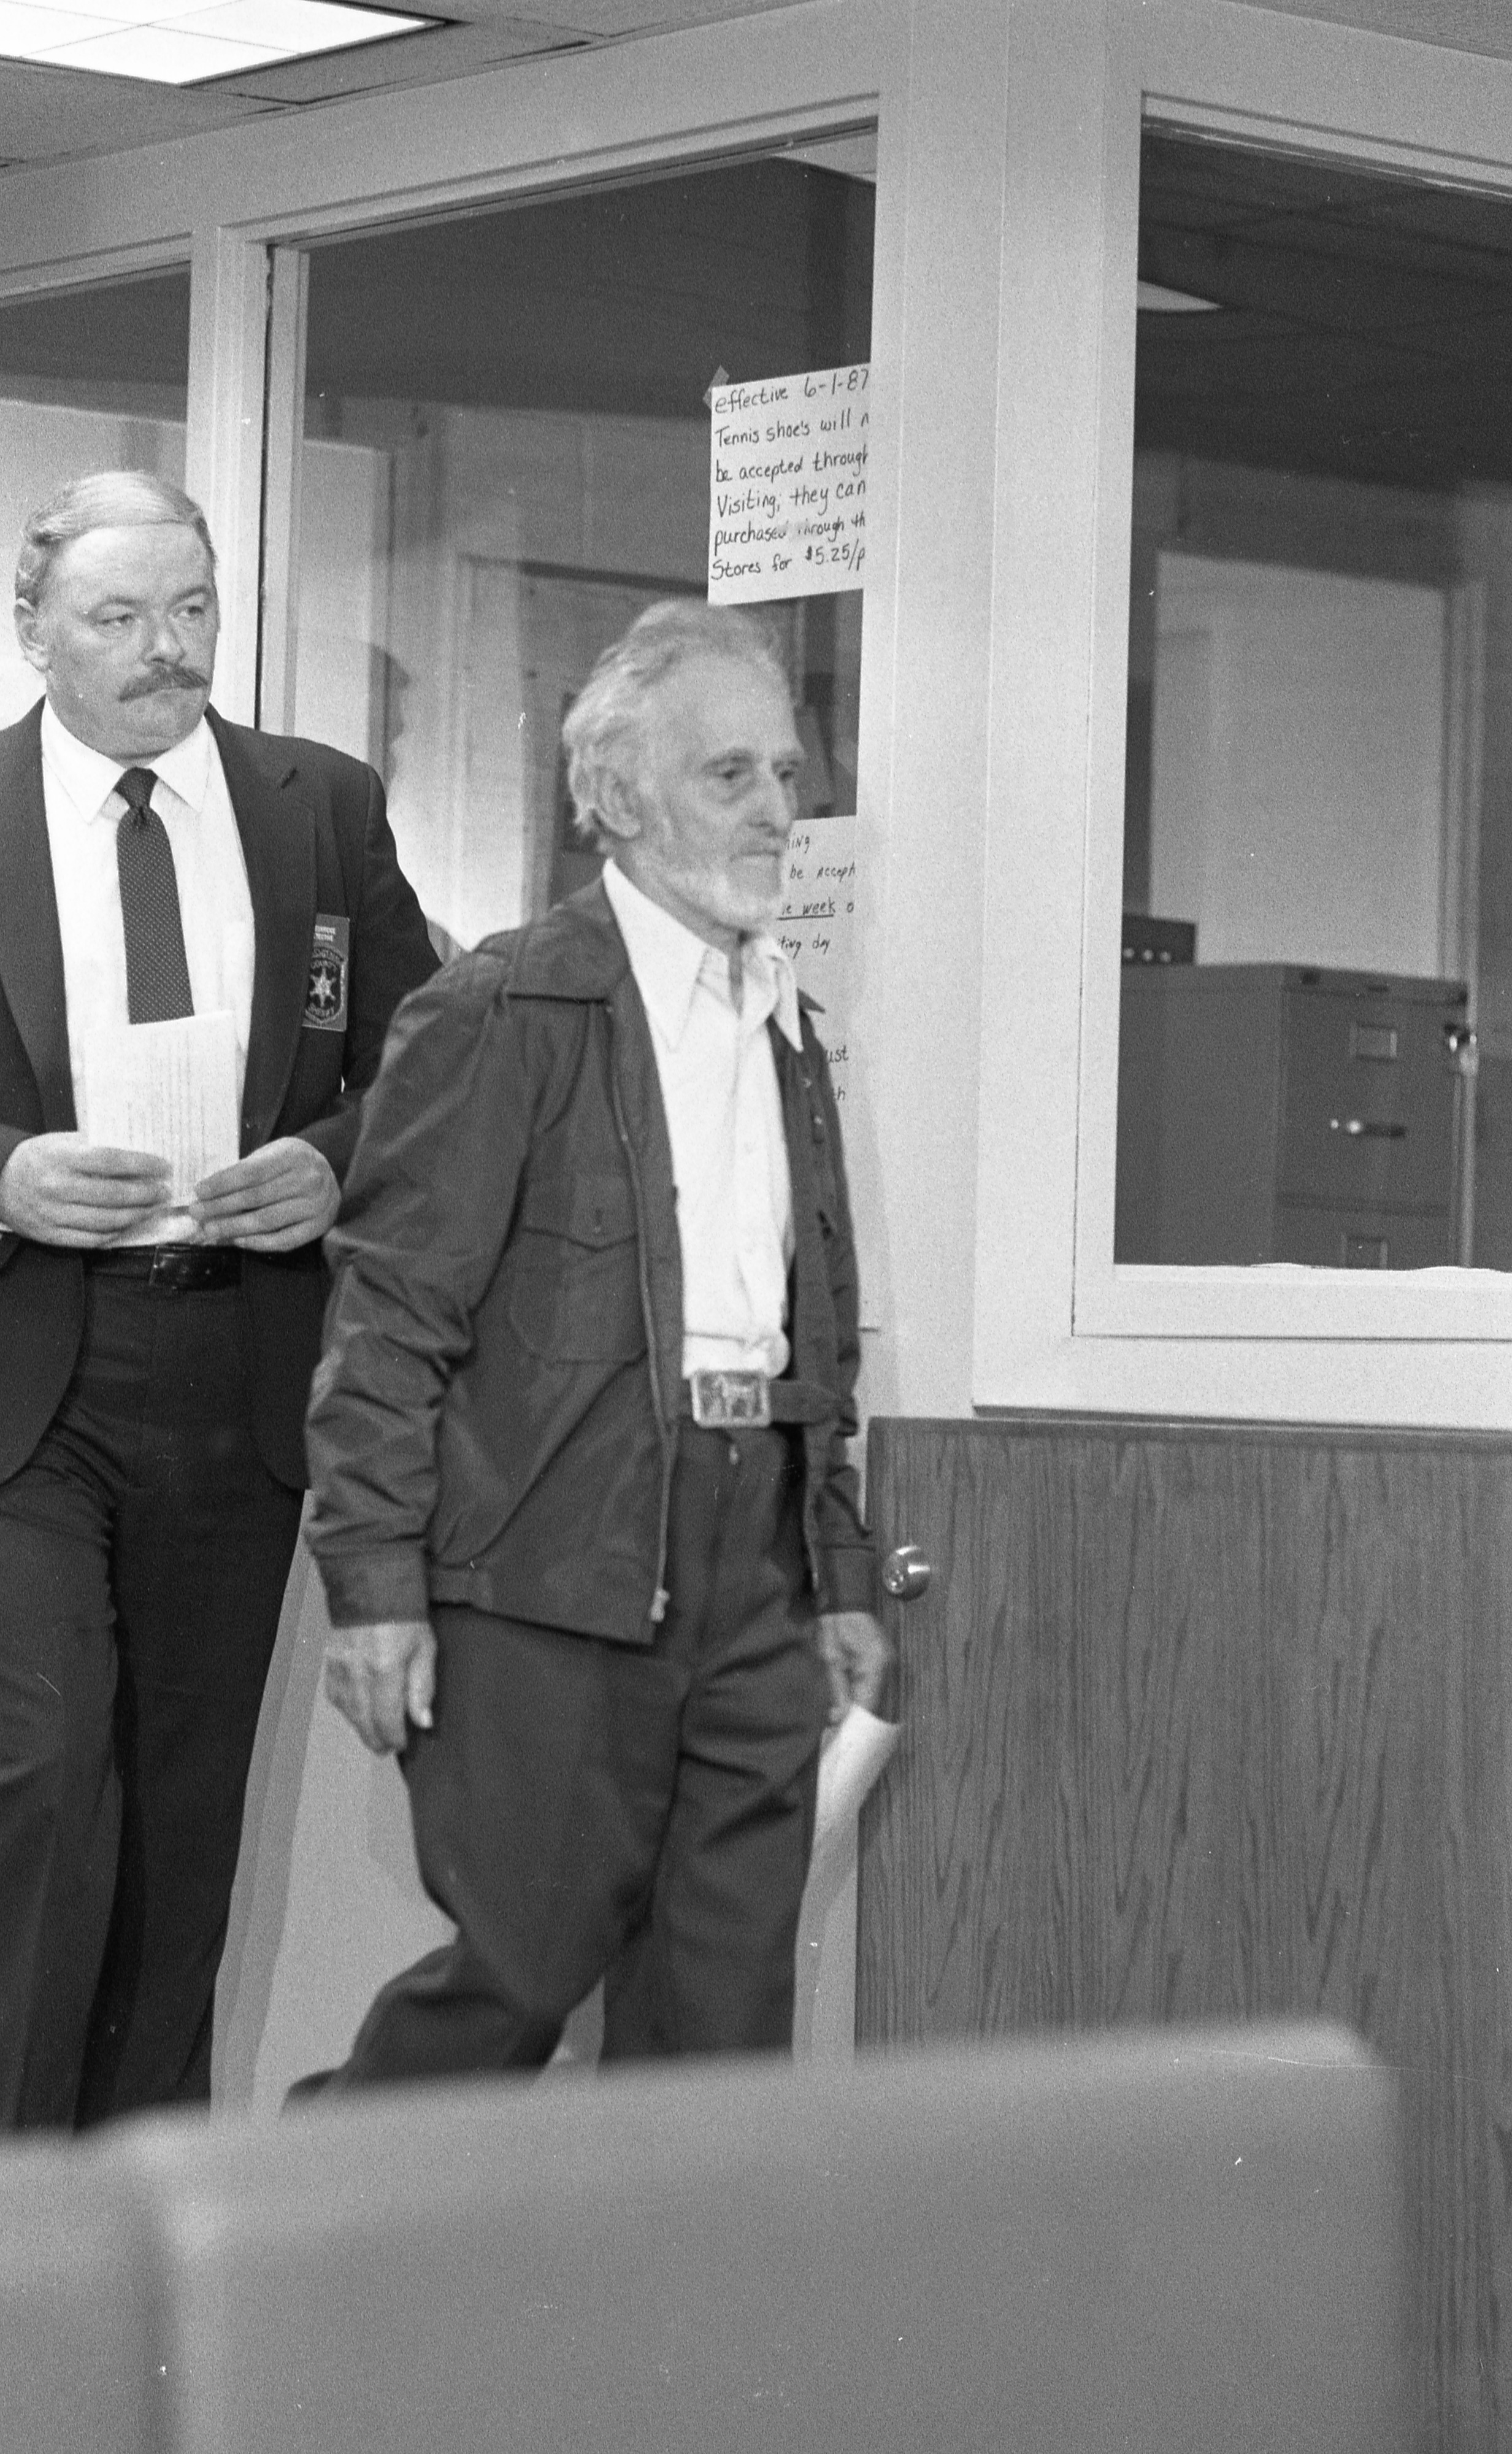 Wilford P. Cashman, aka John E. Burns, Is Followed By Detective William Eskridge At Washtenaw County Jail, June 1987 image